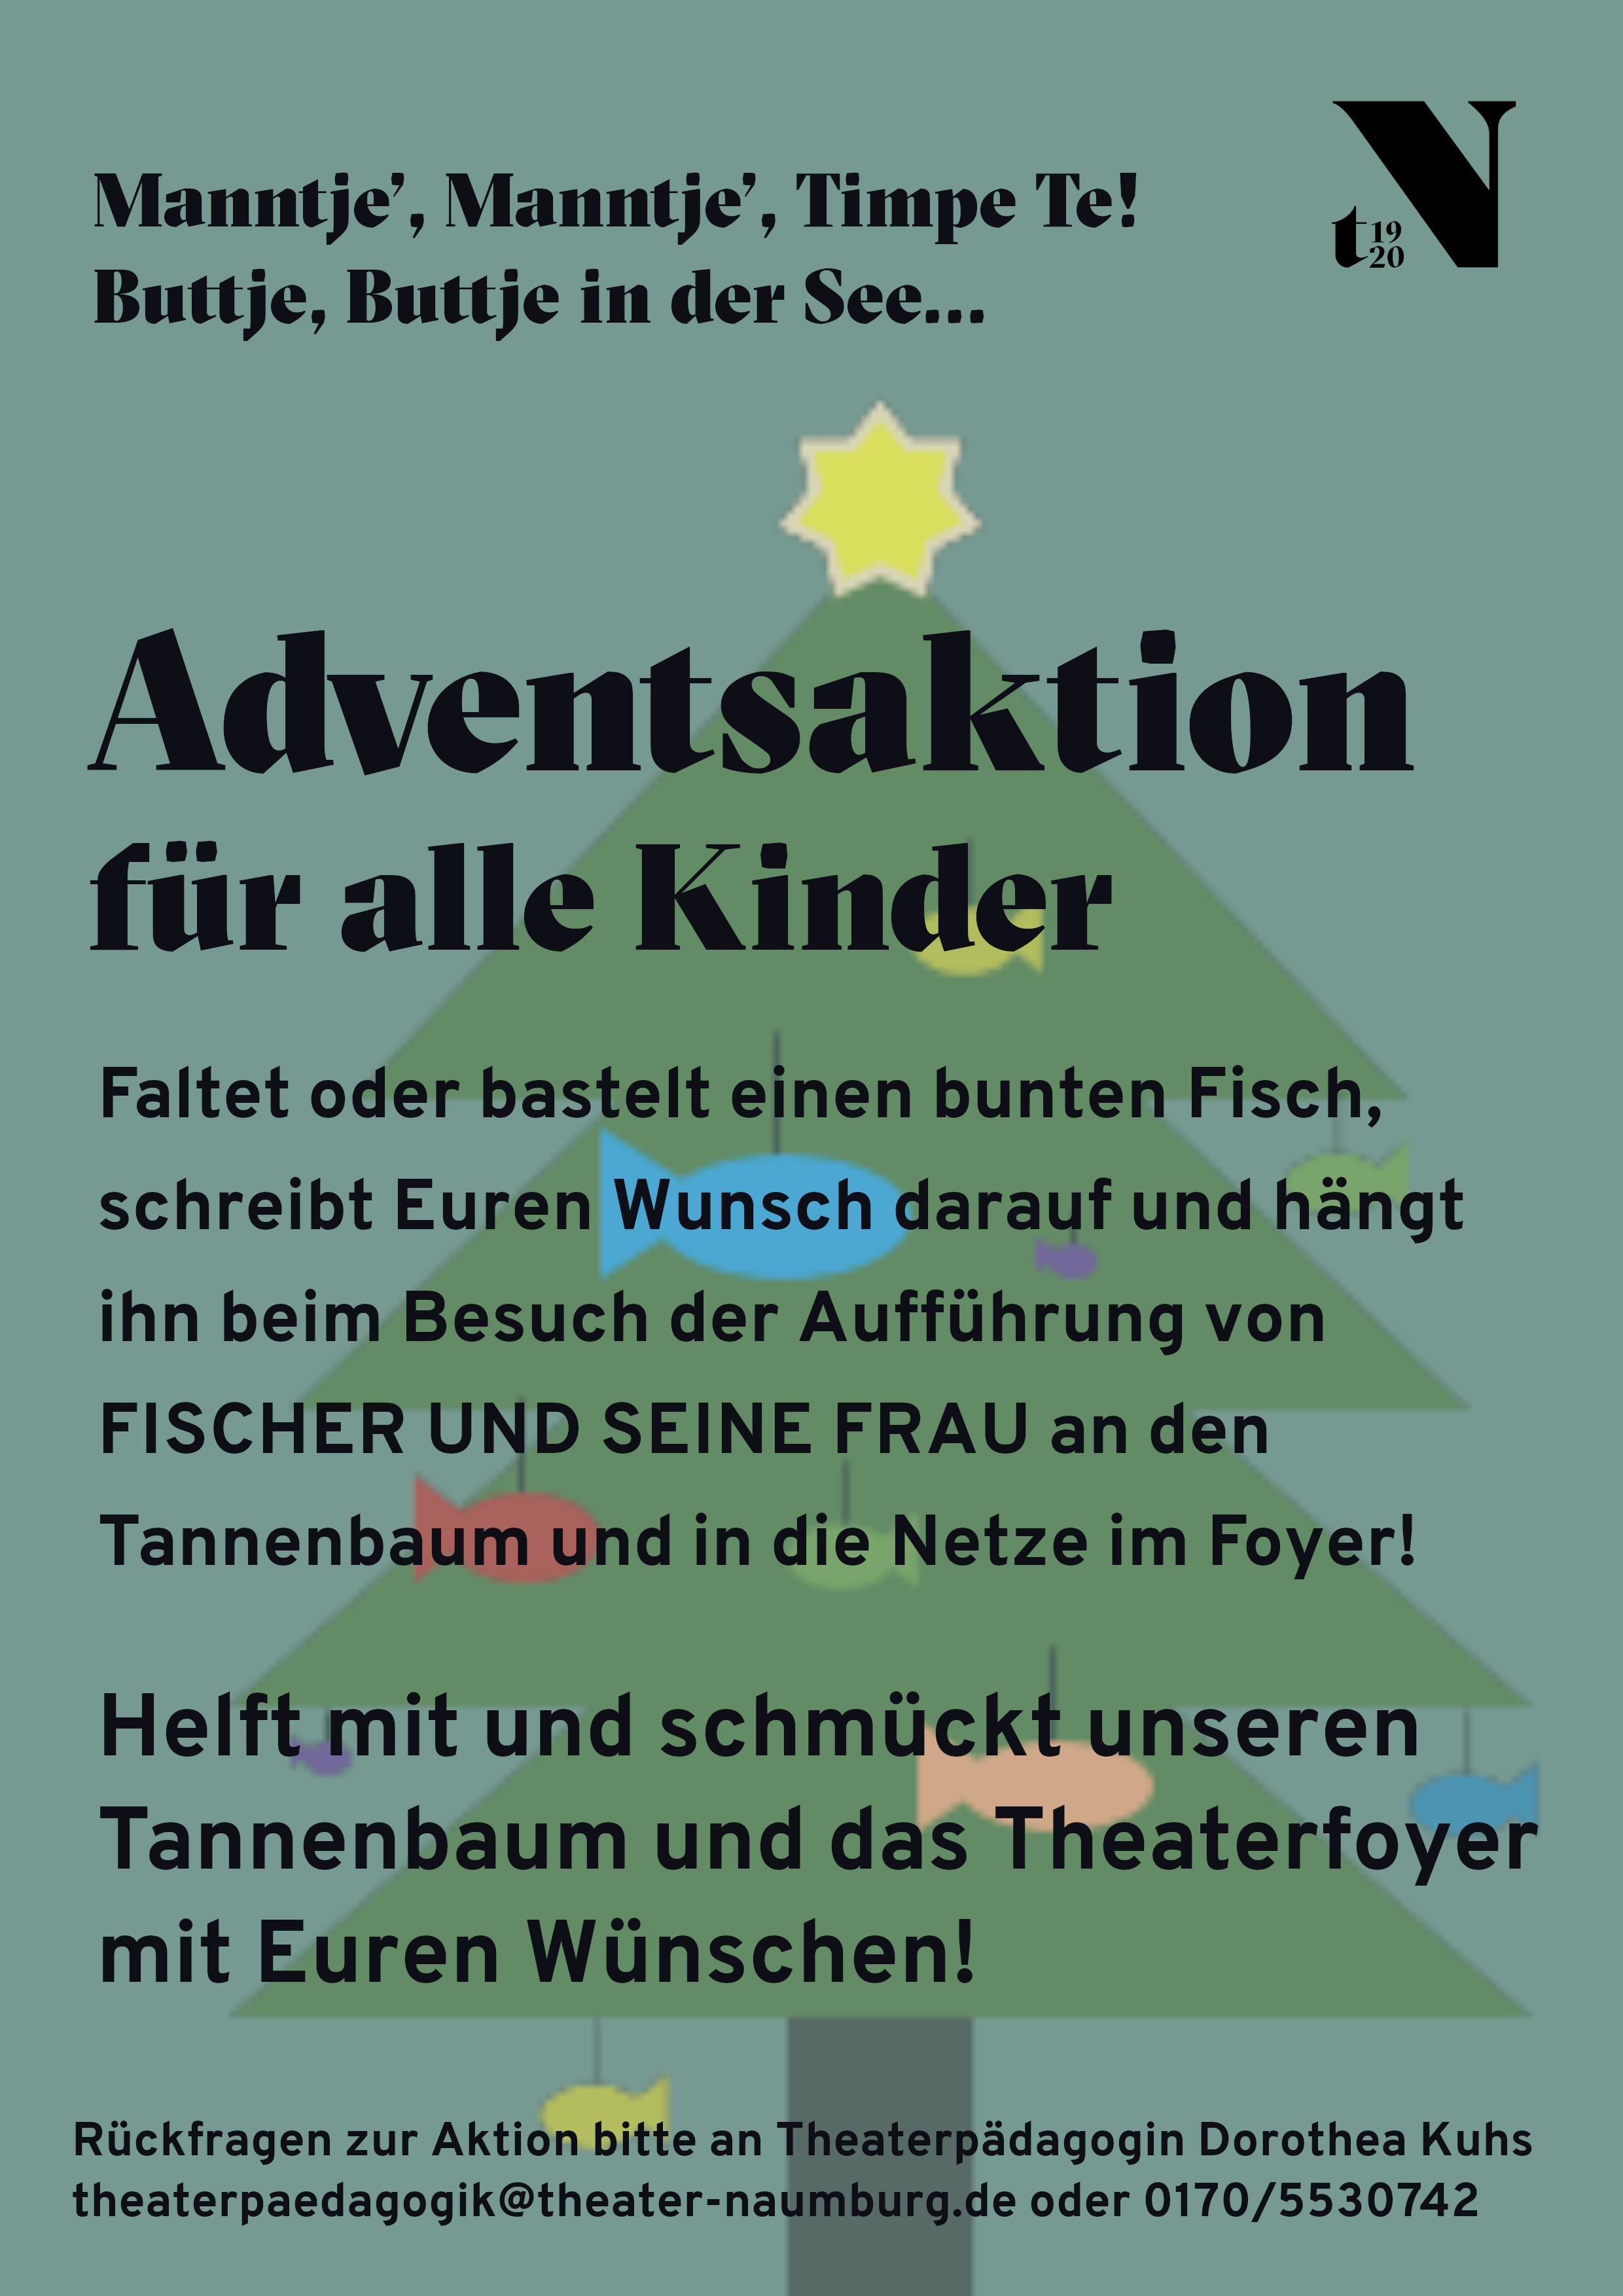 Adventsaktion für Kinder!